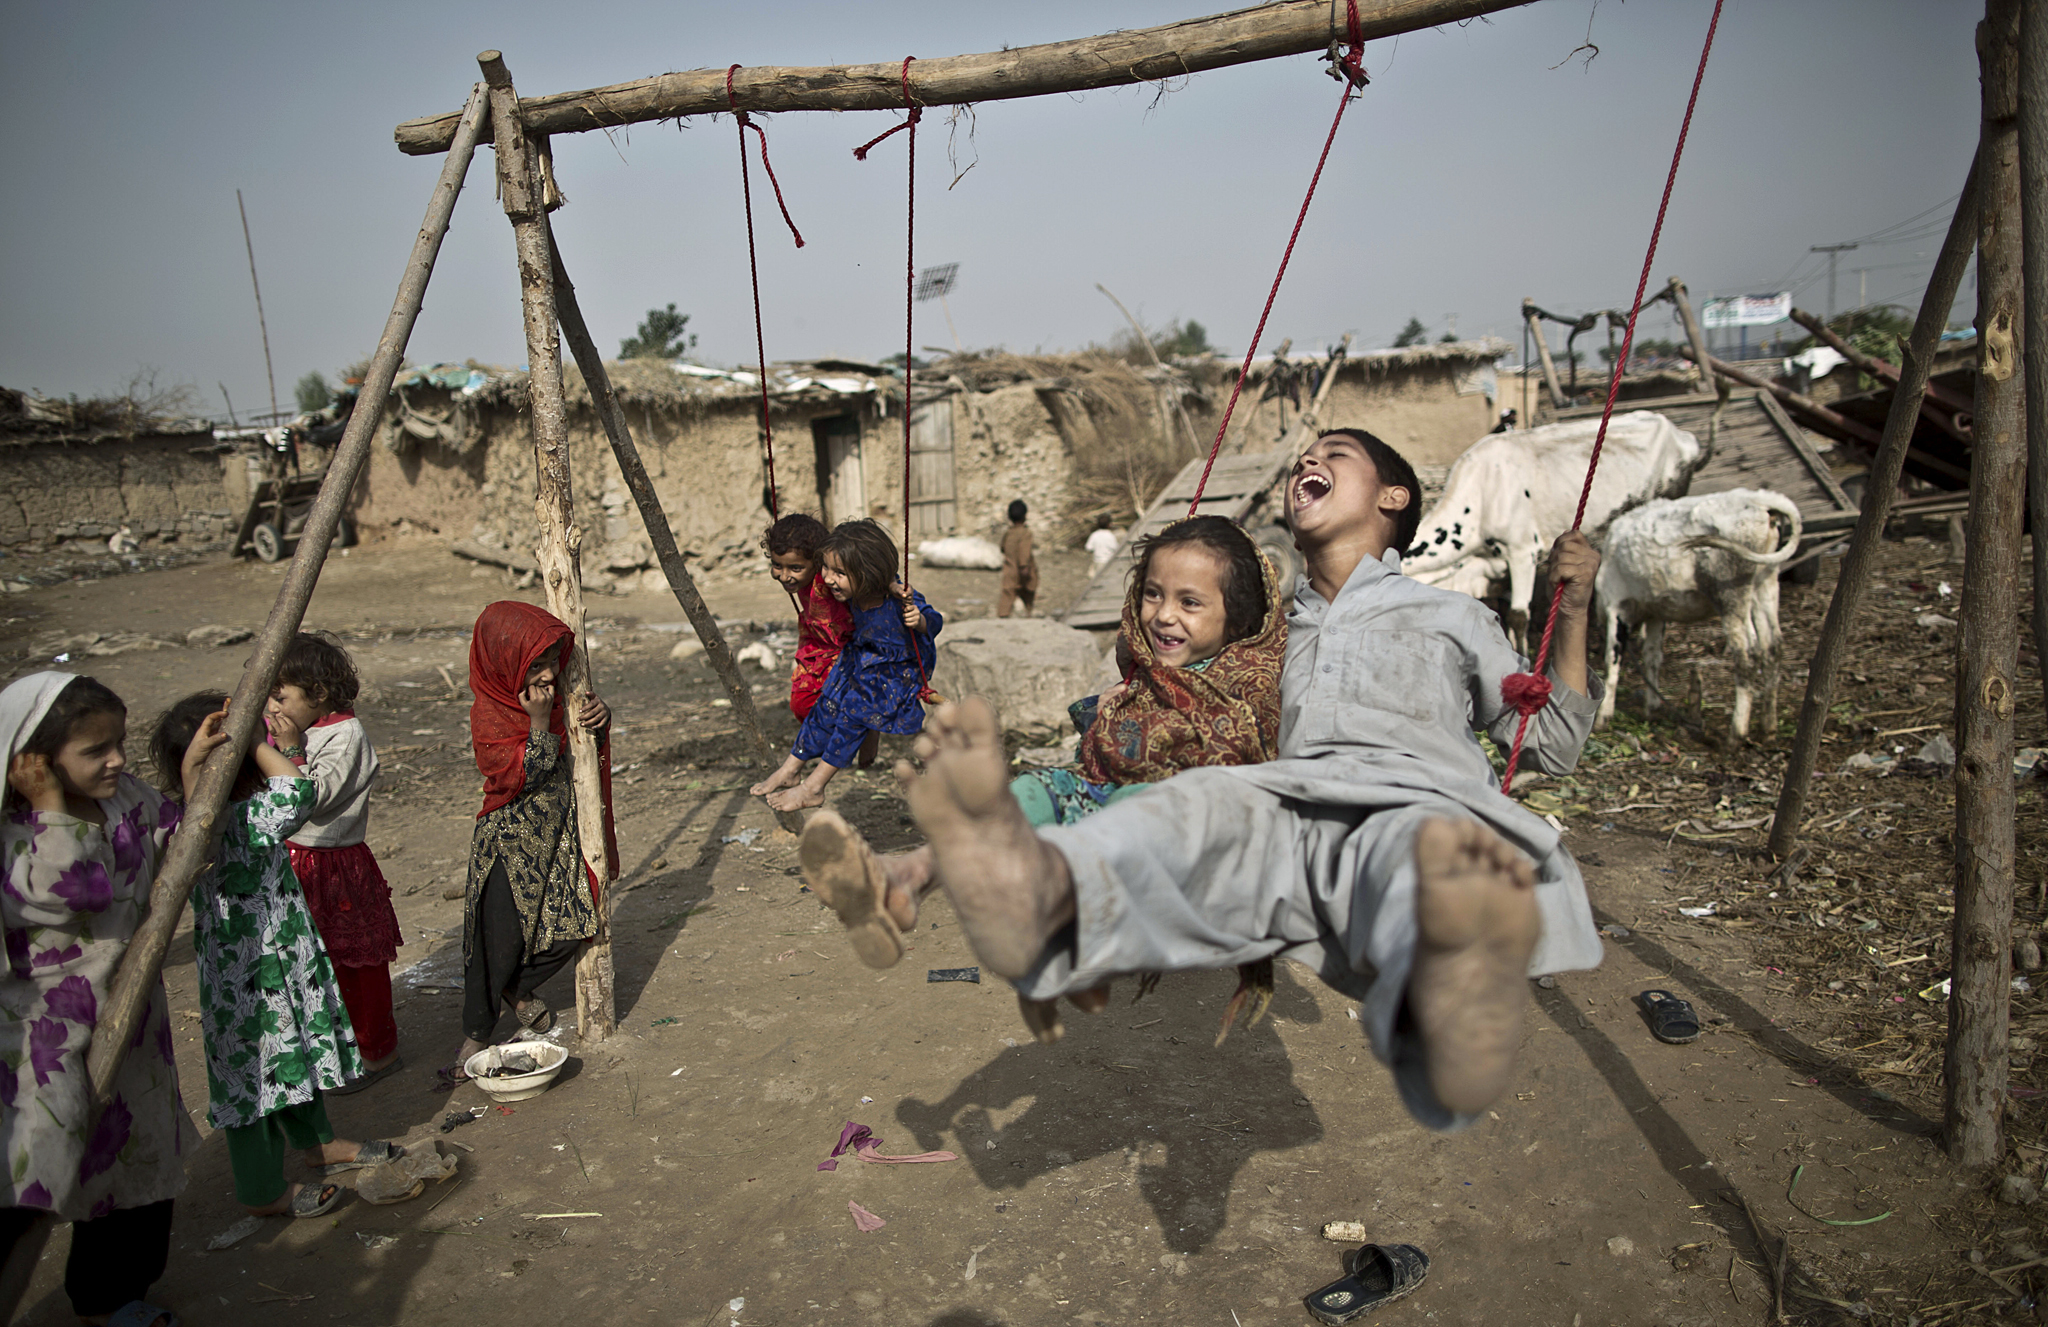 An Afghan refugee boy and his sister enjoy a ride on an improvised swing, in a poor neighborhood on the outskirts of Islamabad, Pakistan, Thursday, Oct. 31, 2013. Pakistan hosts over 1.6 million registered Afghans, the largest and most protracted refugee population in the world, according to the U.N. refugee agency, thousands of them still live without electricity, running water and other basic services.